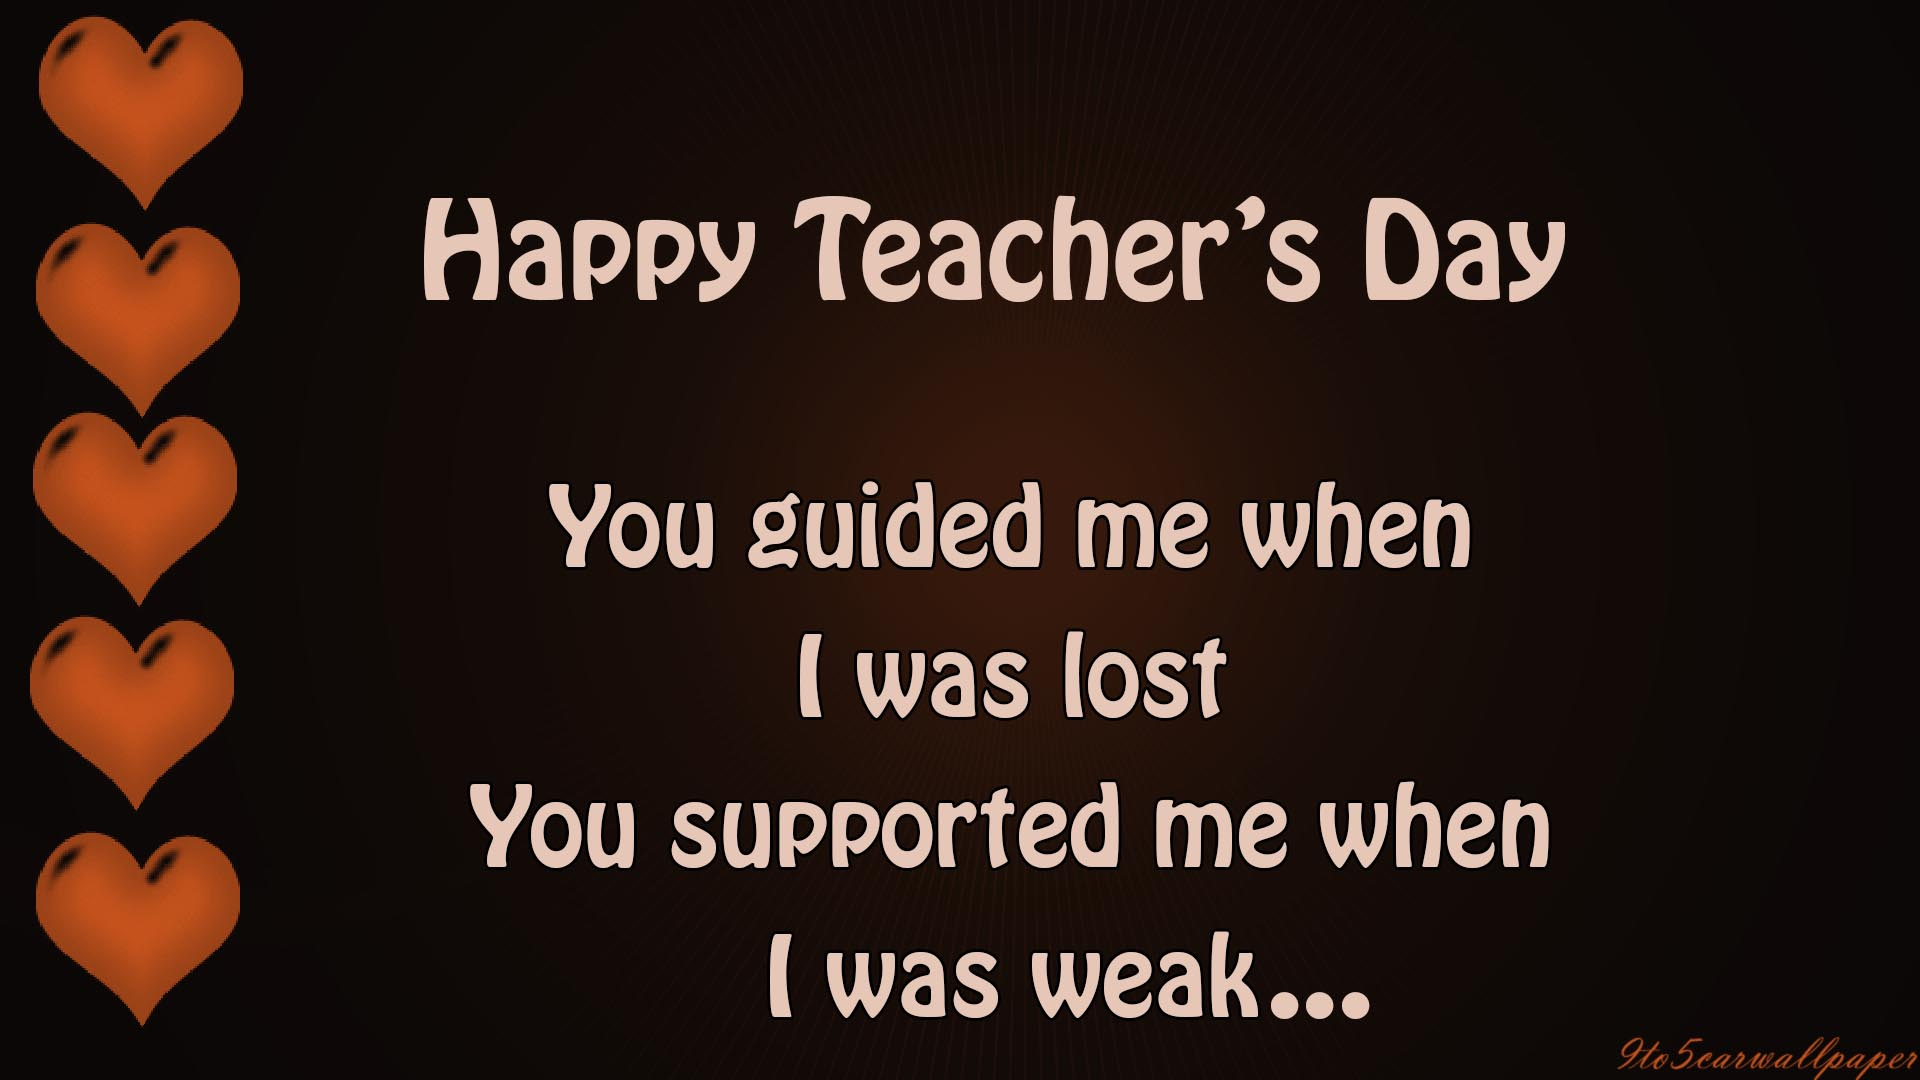 happy-teacher's-day-quotes-images-wallpapers-posters-cards-2017